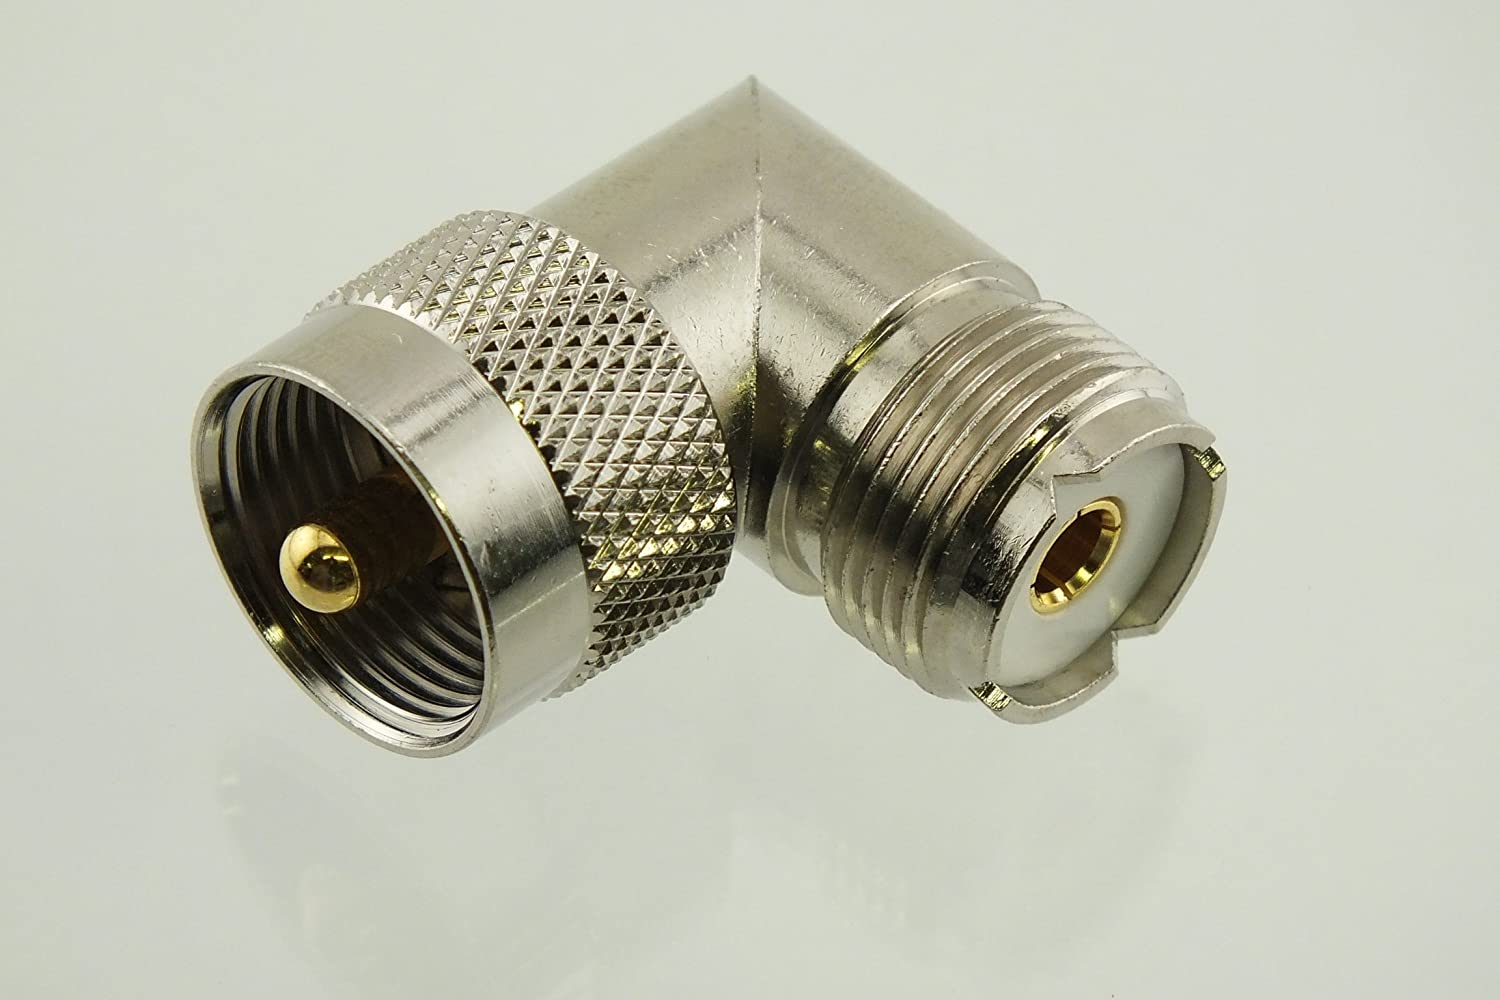 BNC Female to Female Chassis Connector 2-PACK Sold by W5SWL